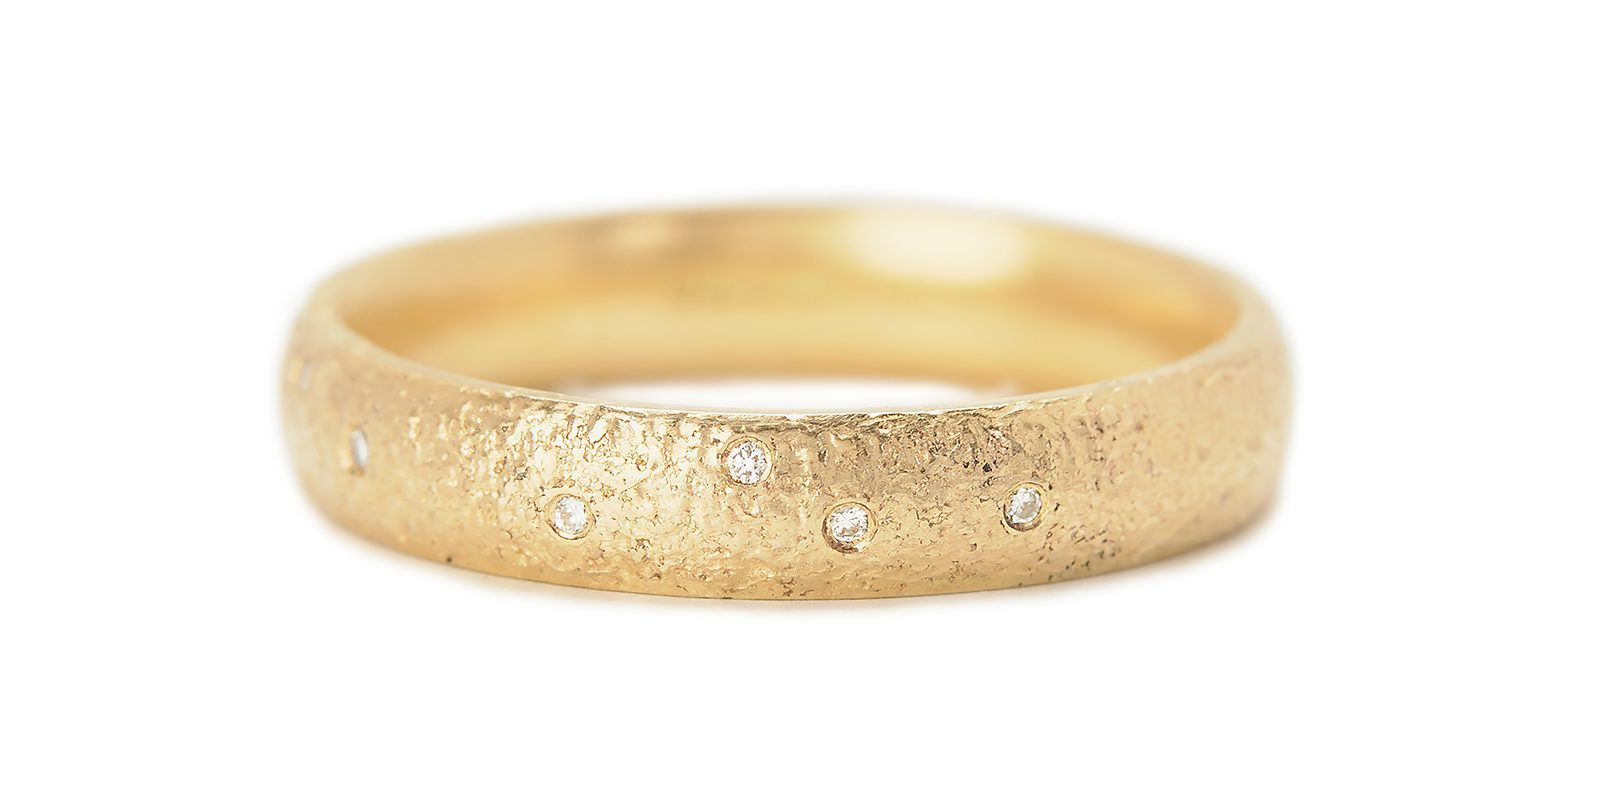 Textured Gold, Diamond Scattered Ring